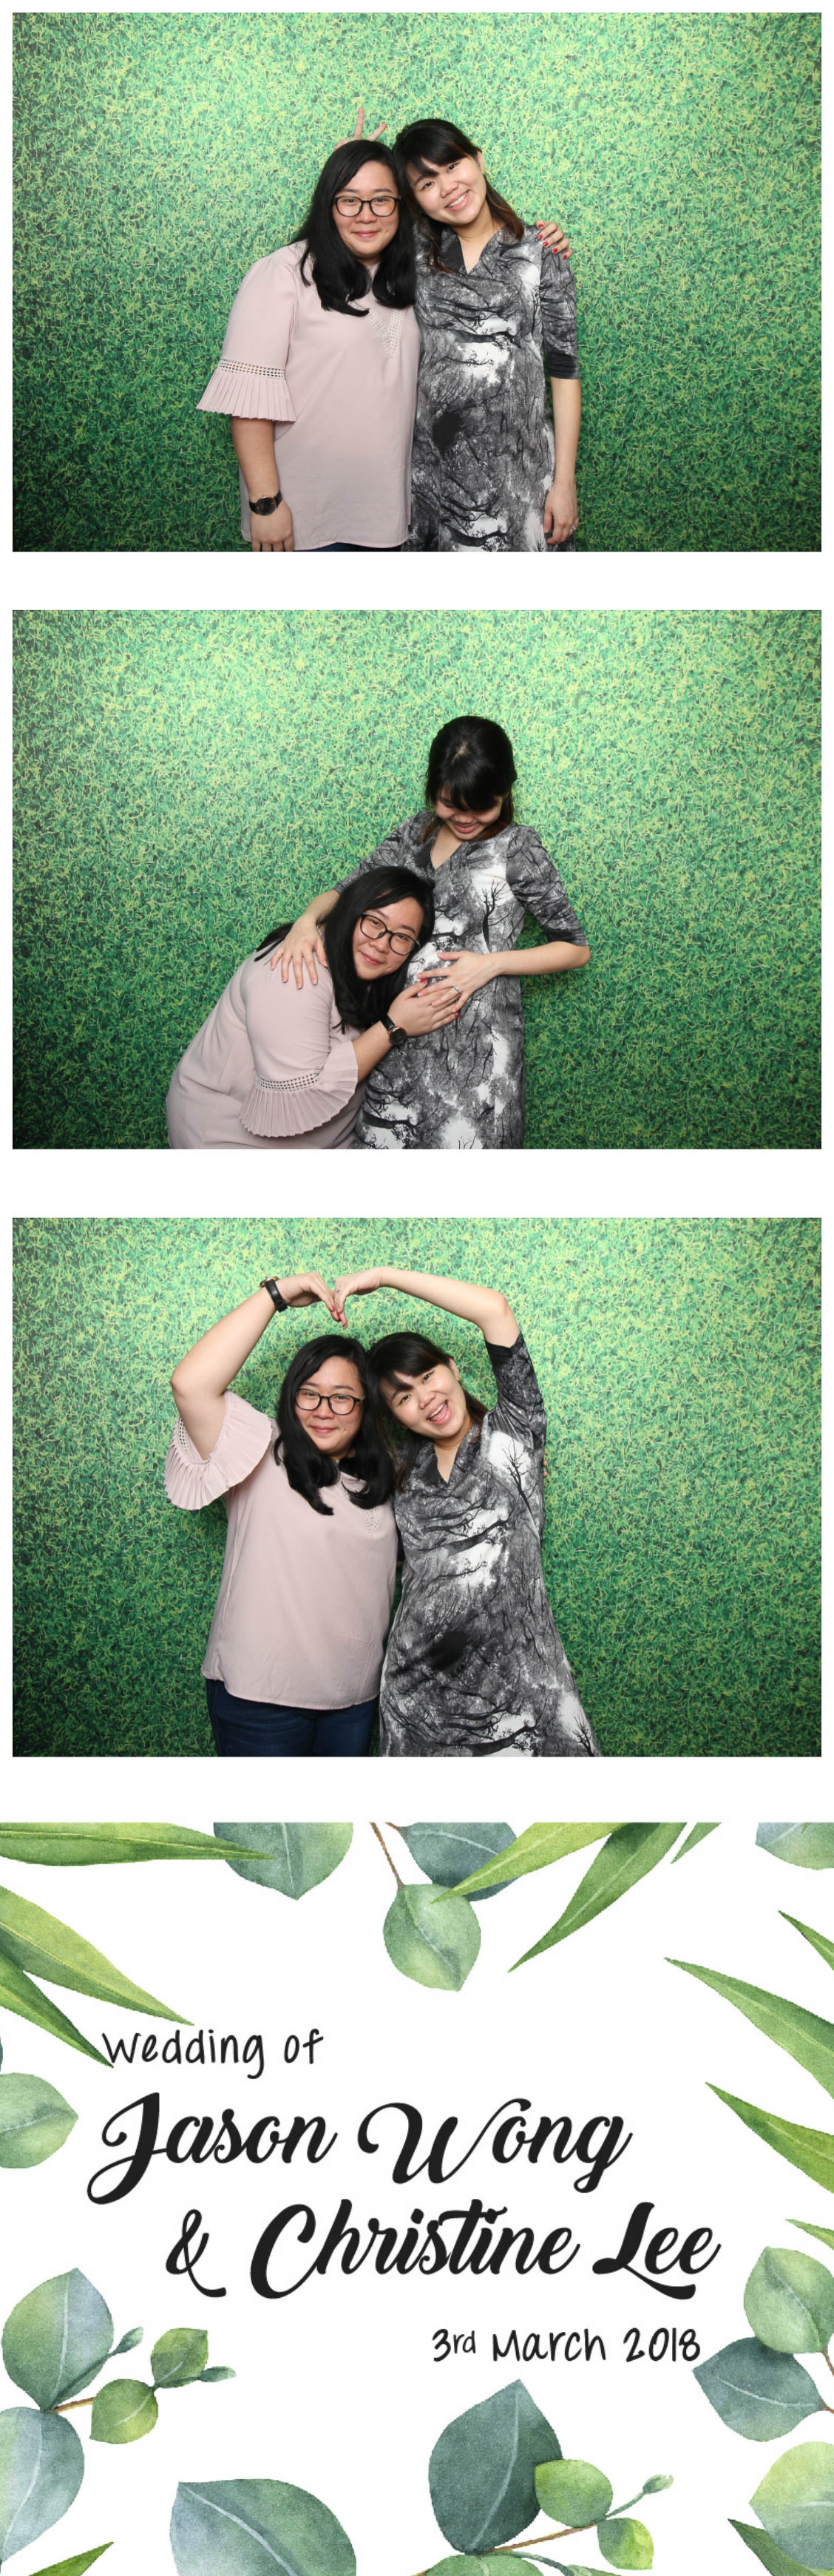 Photobooth 0302-47